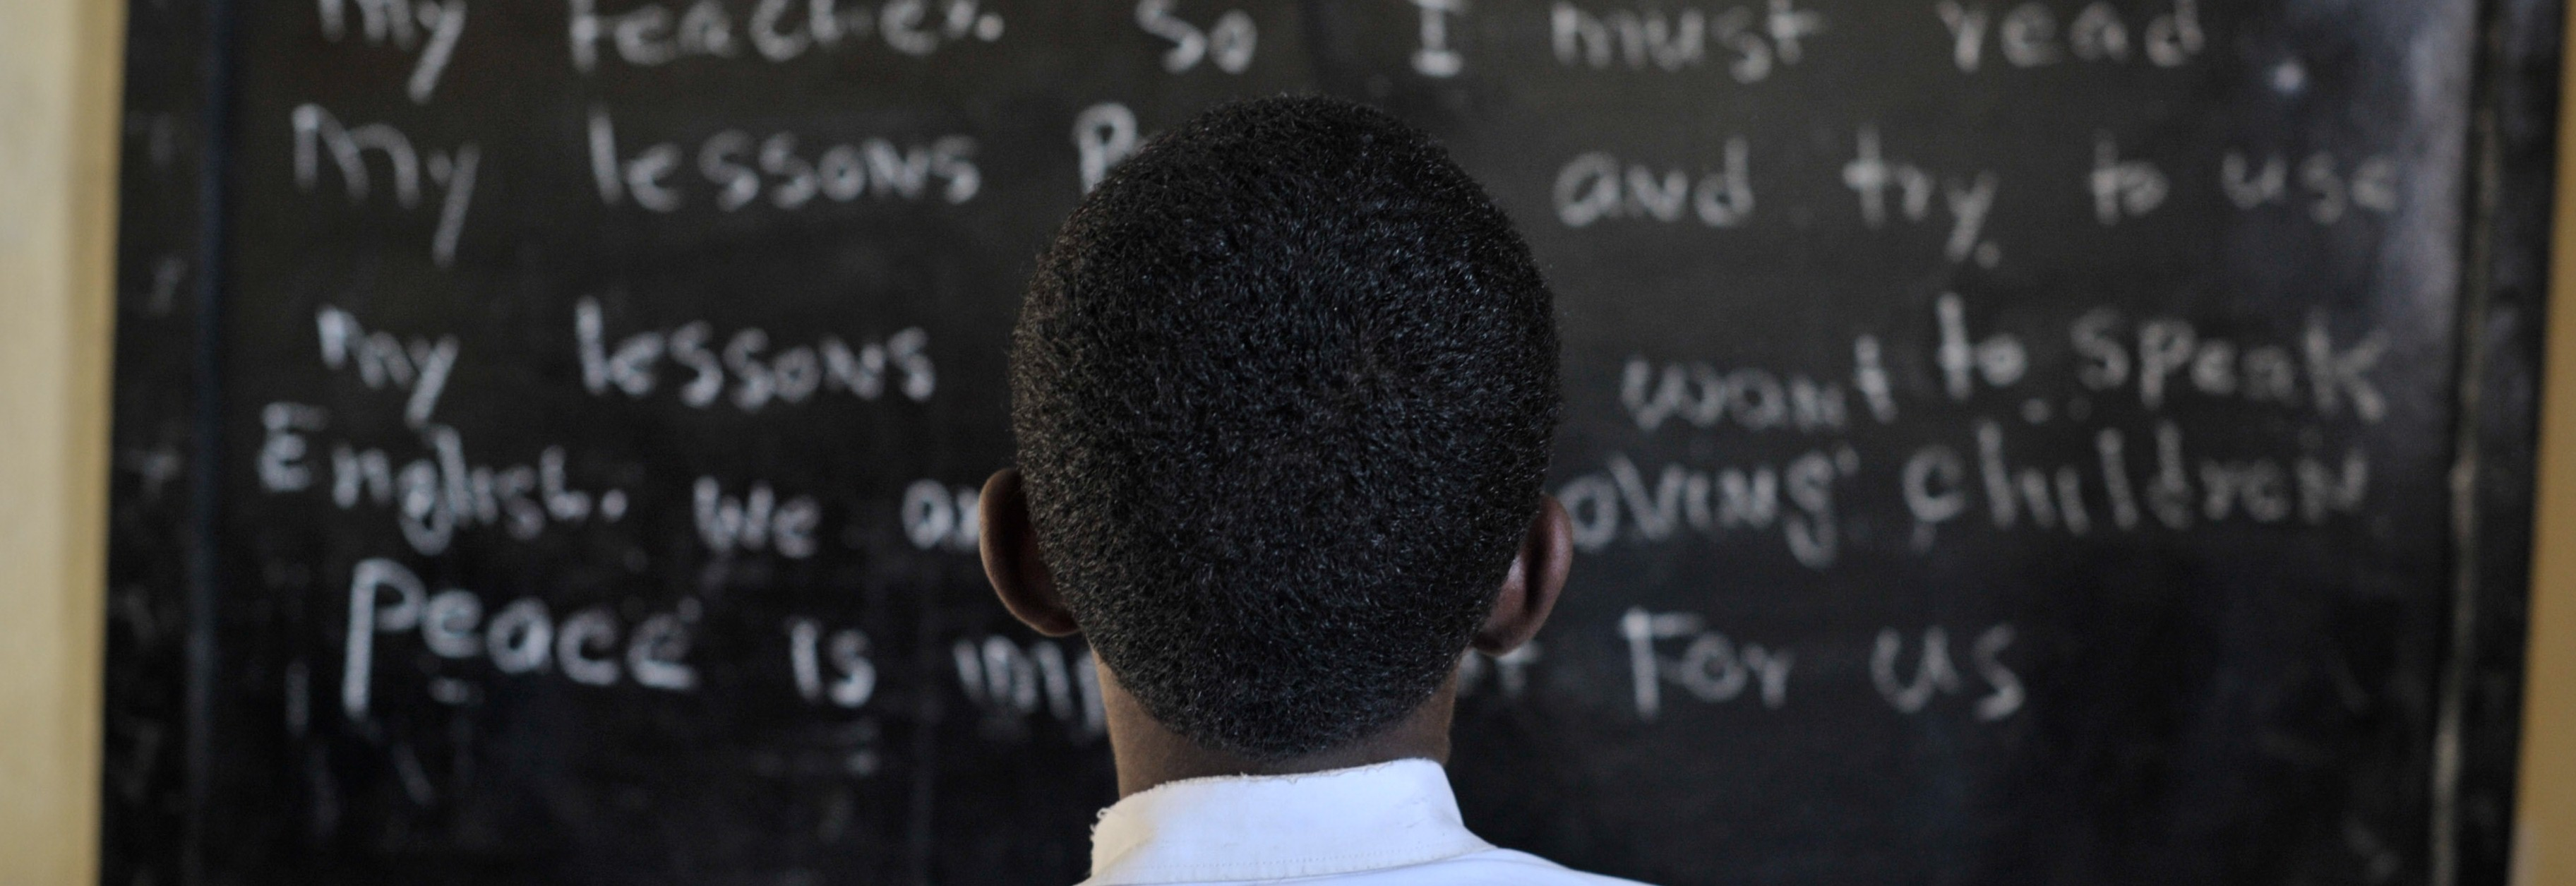 A Somali boy reads from the board during English class at as school run by the Abdi Hawa Center in the Afgoye corridor on September 25. Dr. Hawa, an internationally recognized humanitarian, established the Hawa Abdi Center in 1983, and has catered for tens of thousands over the years displaced by civil war in Somalia. The center now contains an IDP camp, a school, and a hospital. AU UN IST PHOTO / Tobin Jones